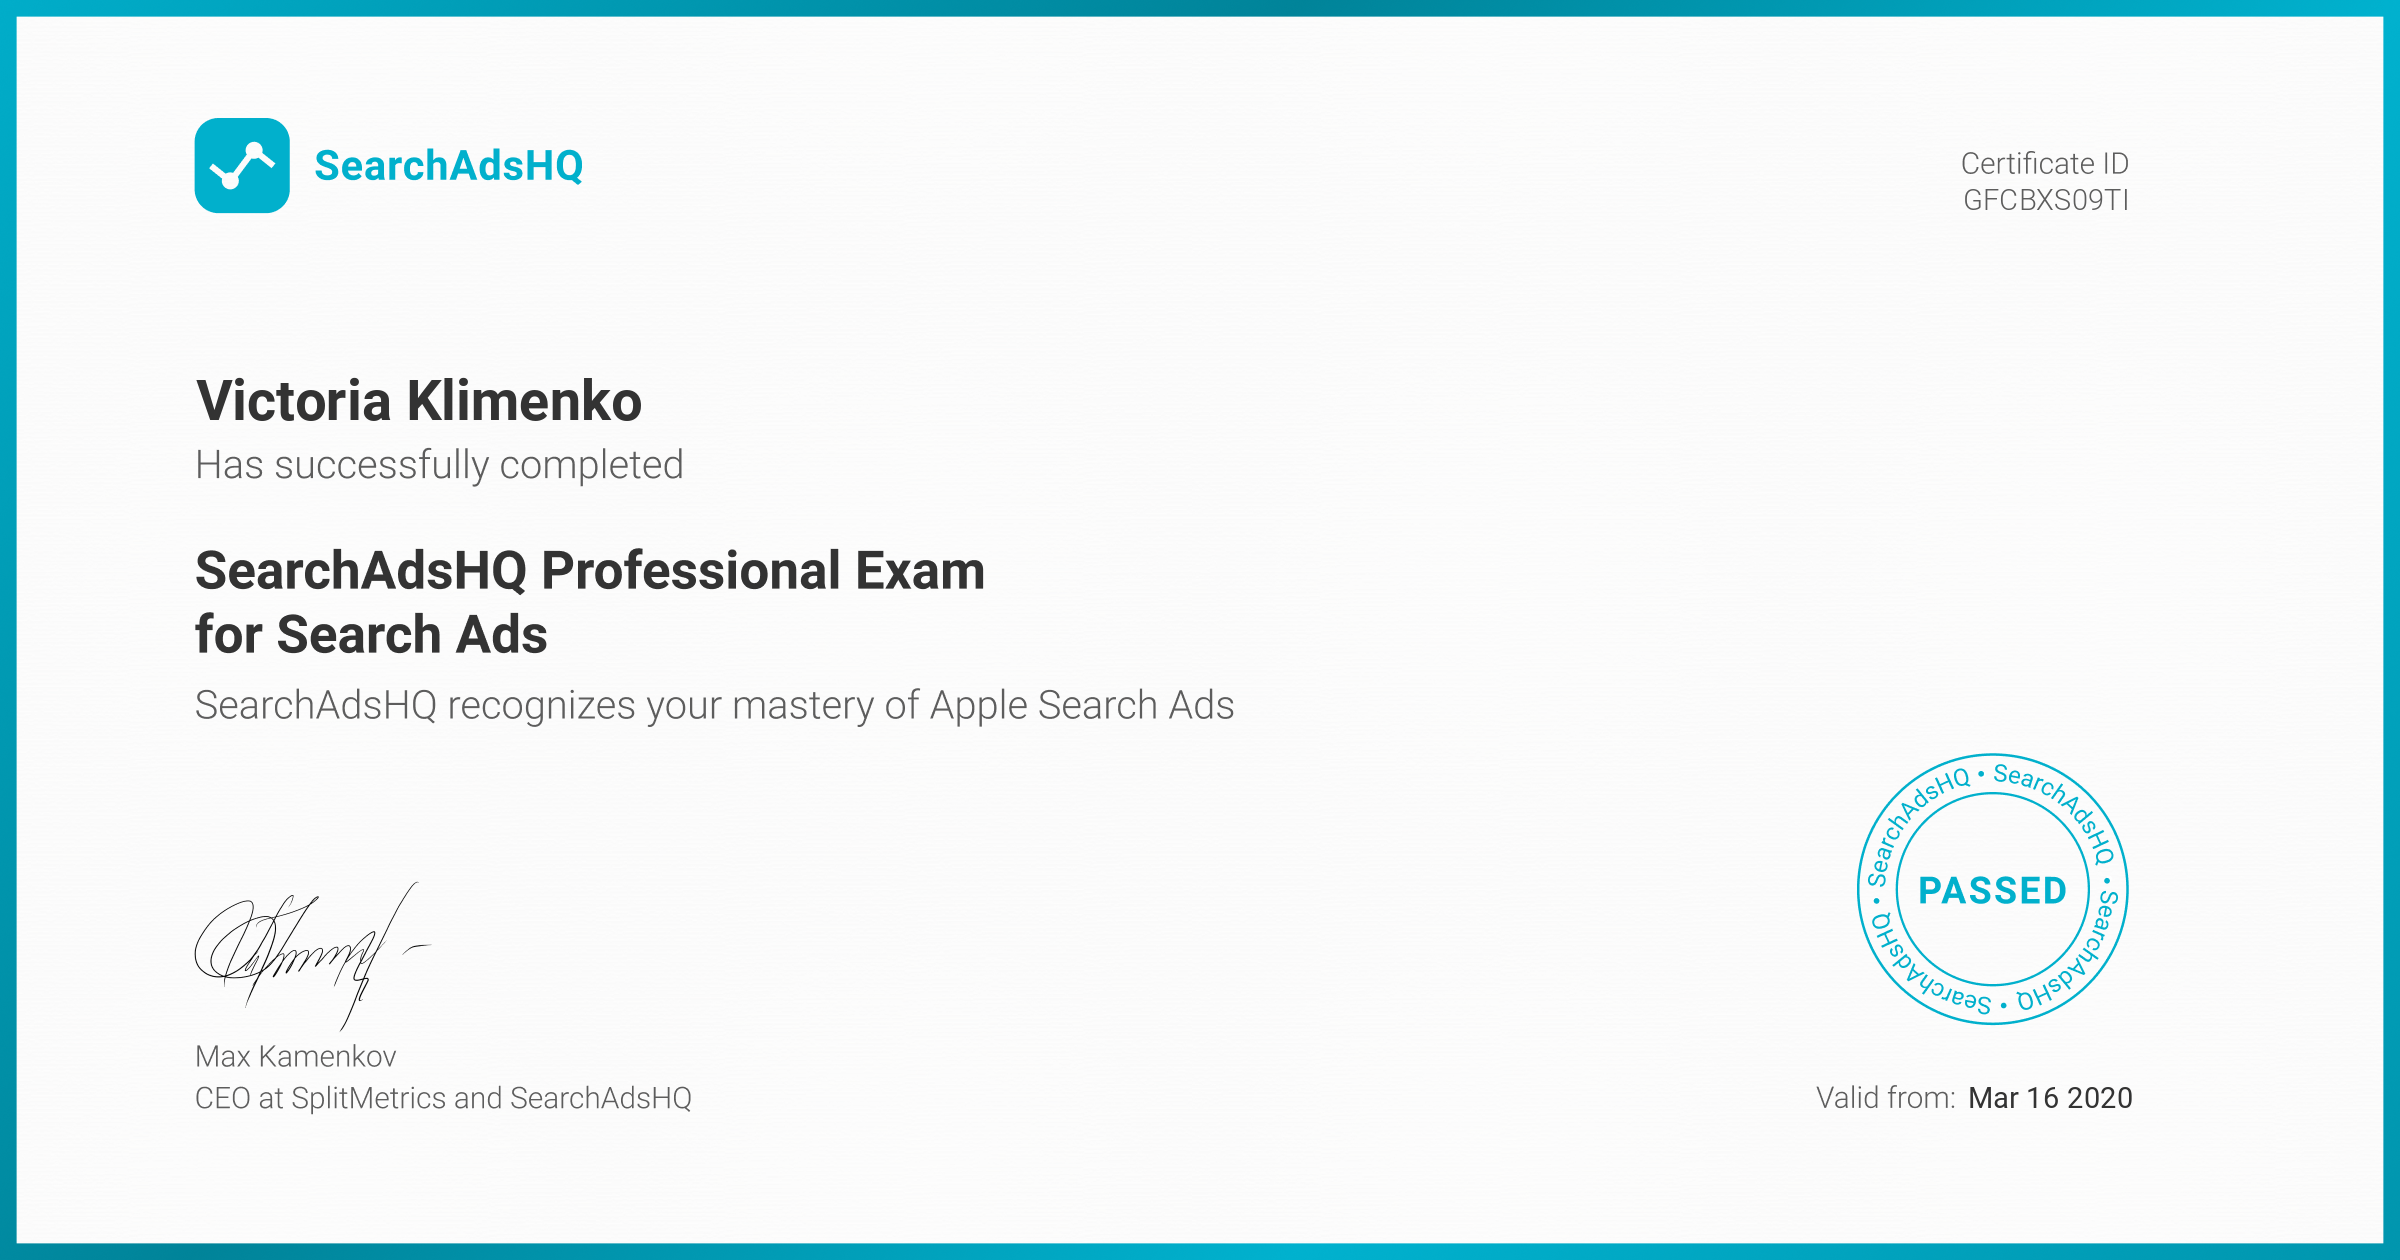 Certificate for Victoria Klimenko | SearchAdsHQ Professional Exam for Search Ads